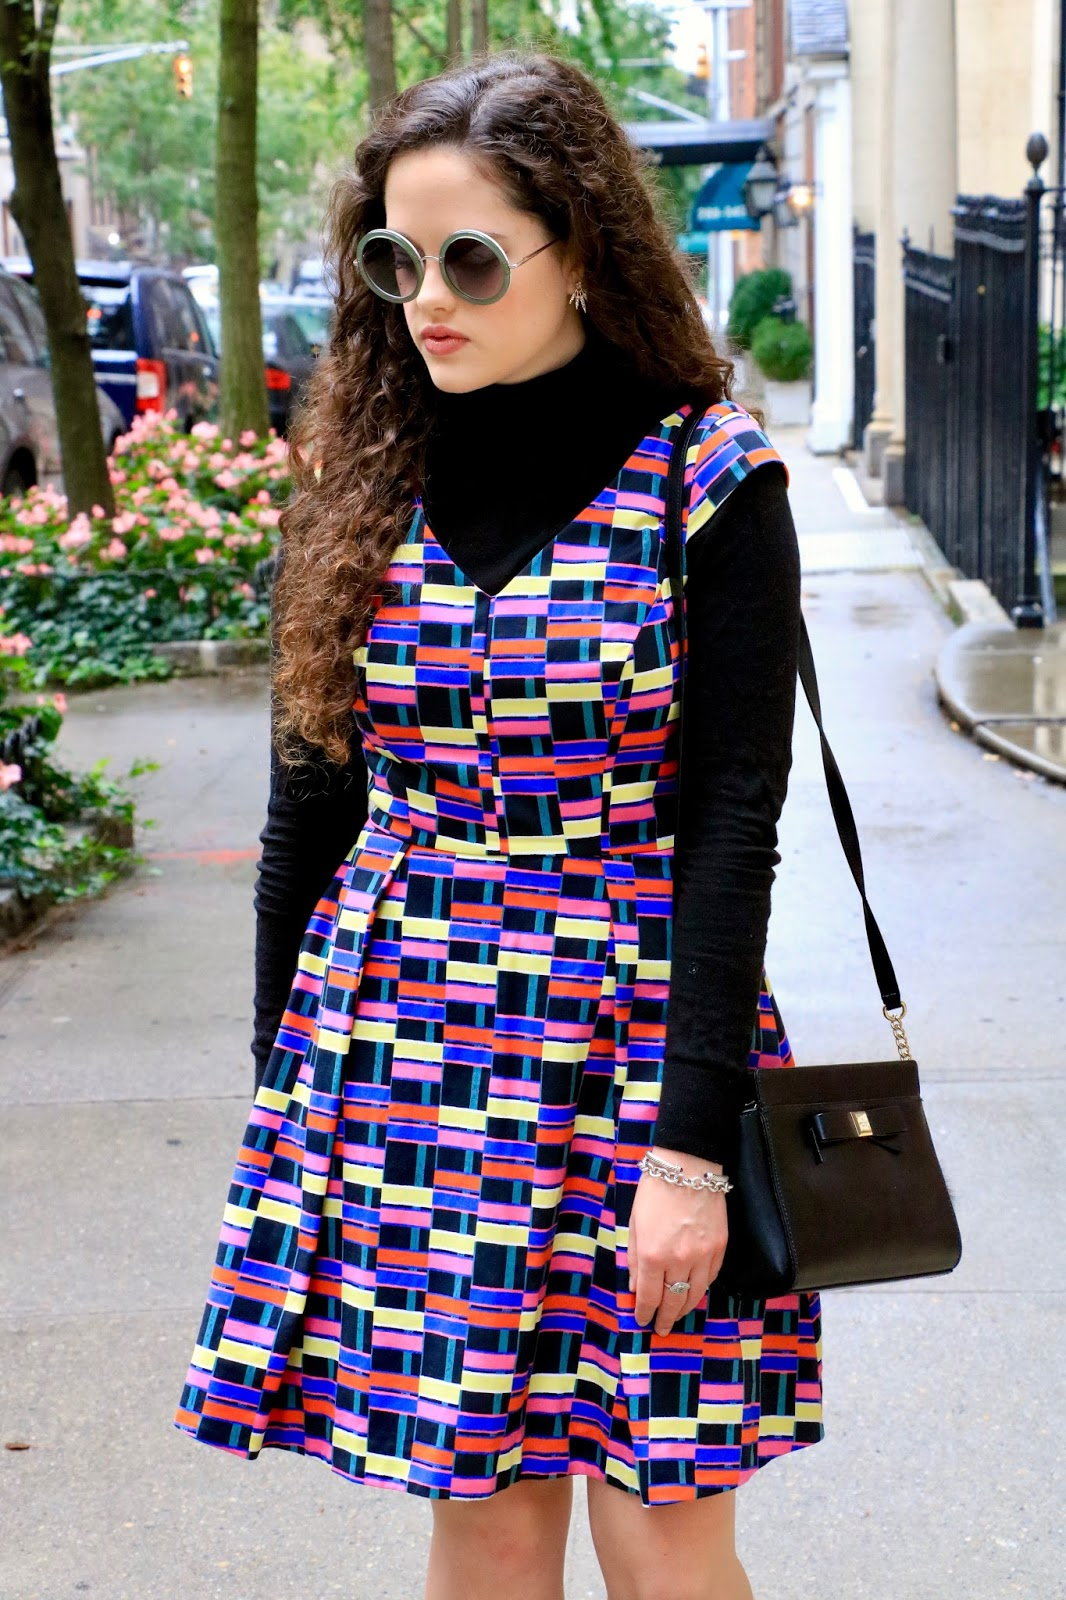 turtleneck layered under dress